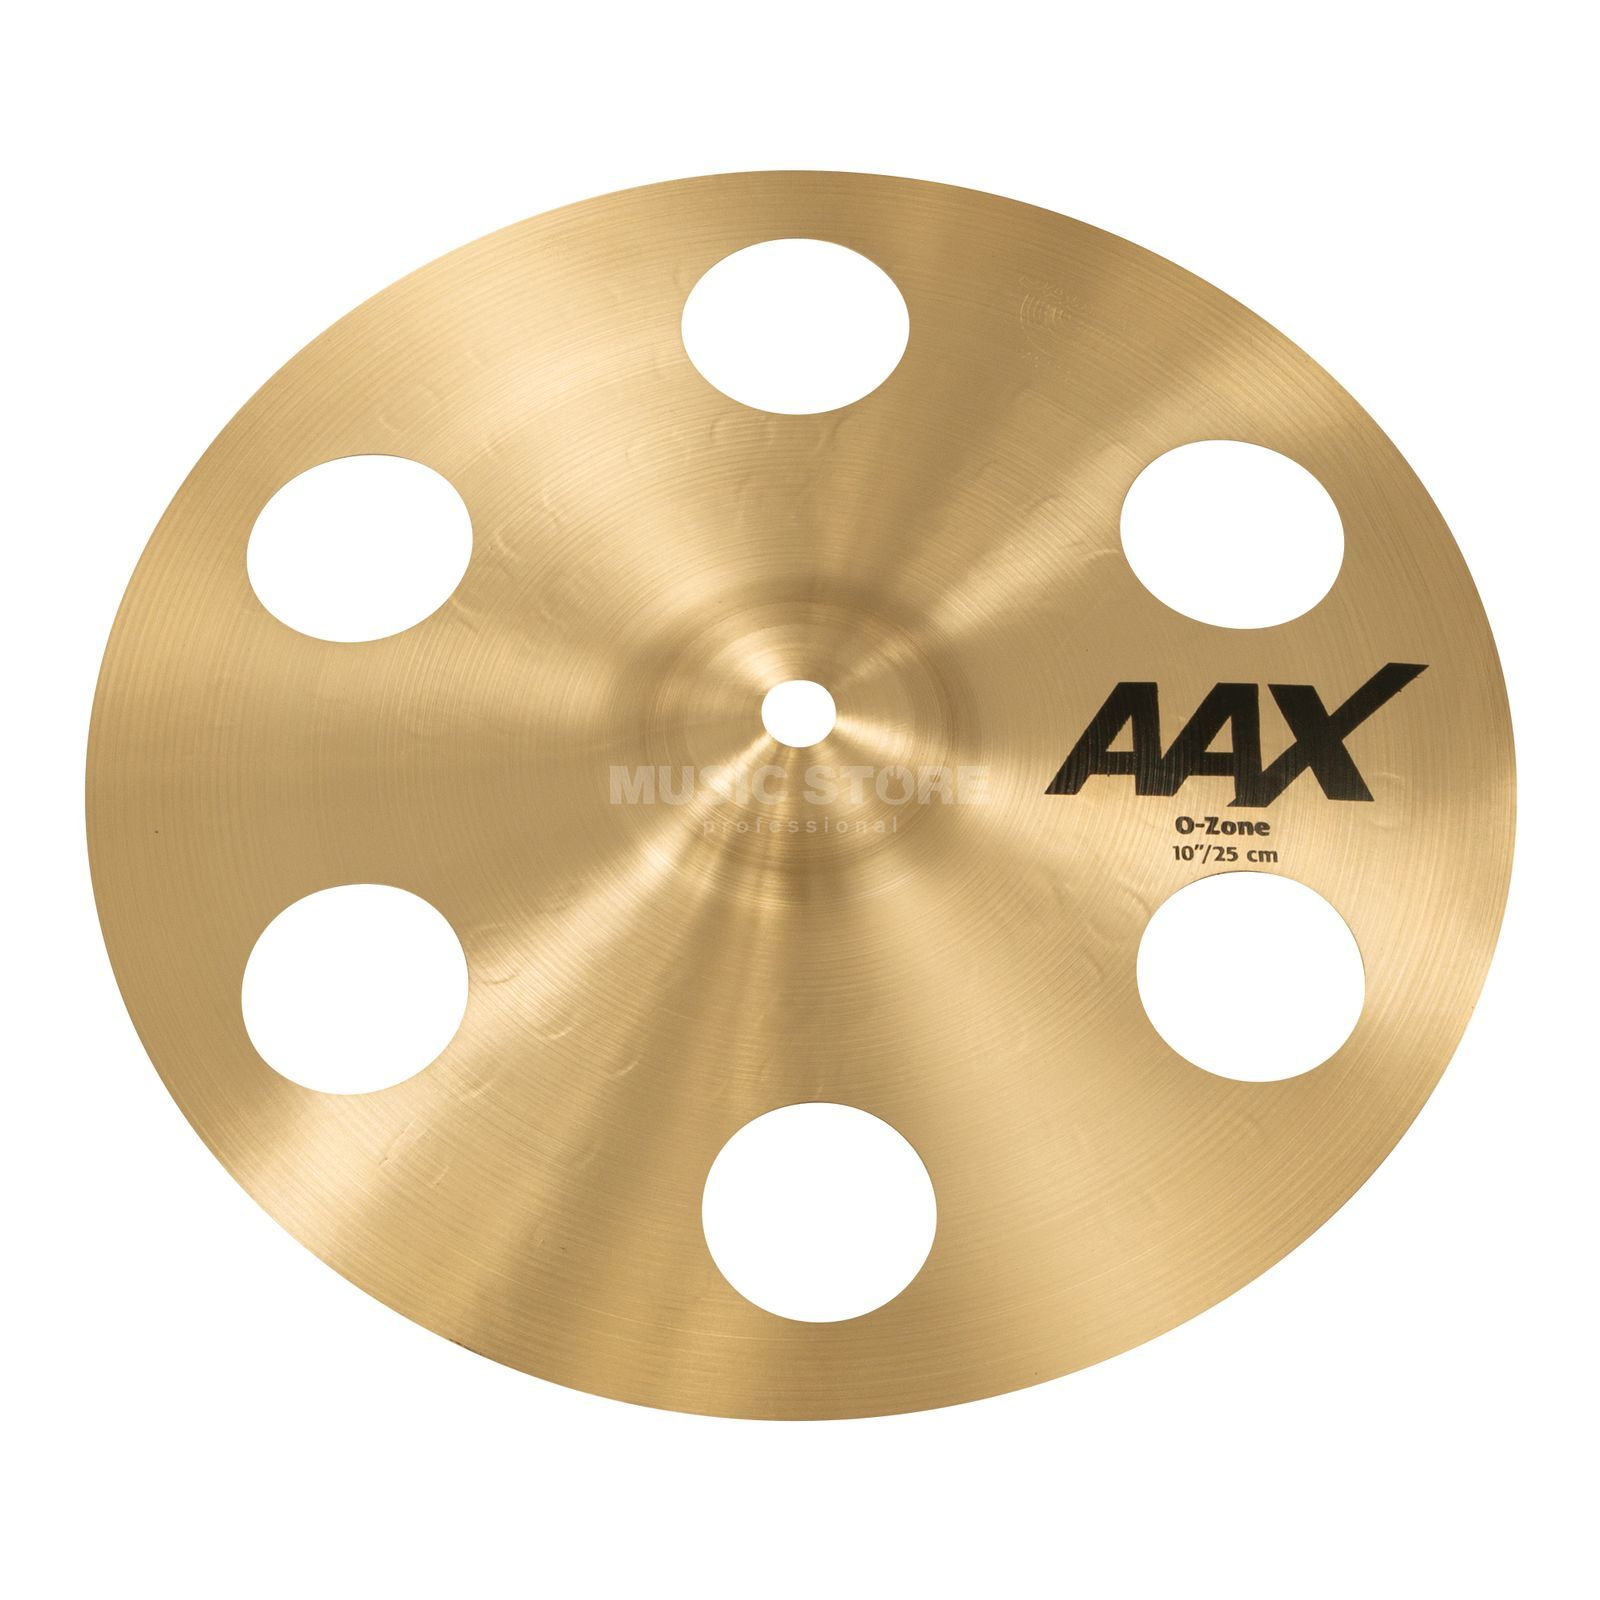 "Sabian AAX O-Zone Splash 10"" Natural Finish Produktbild"